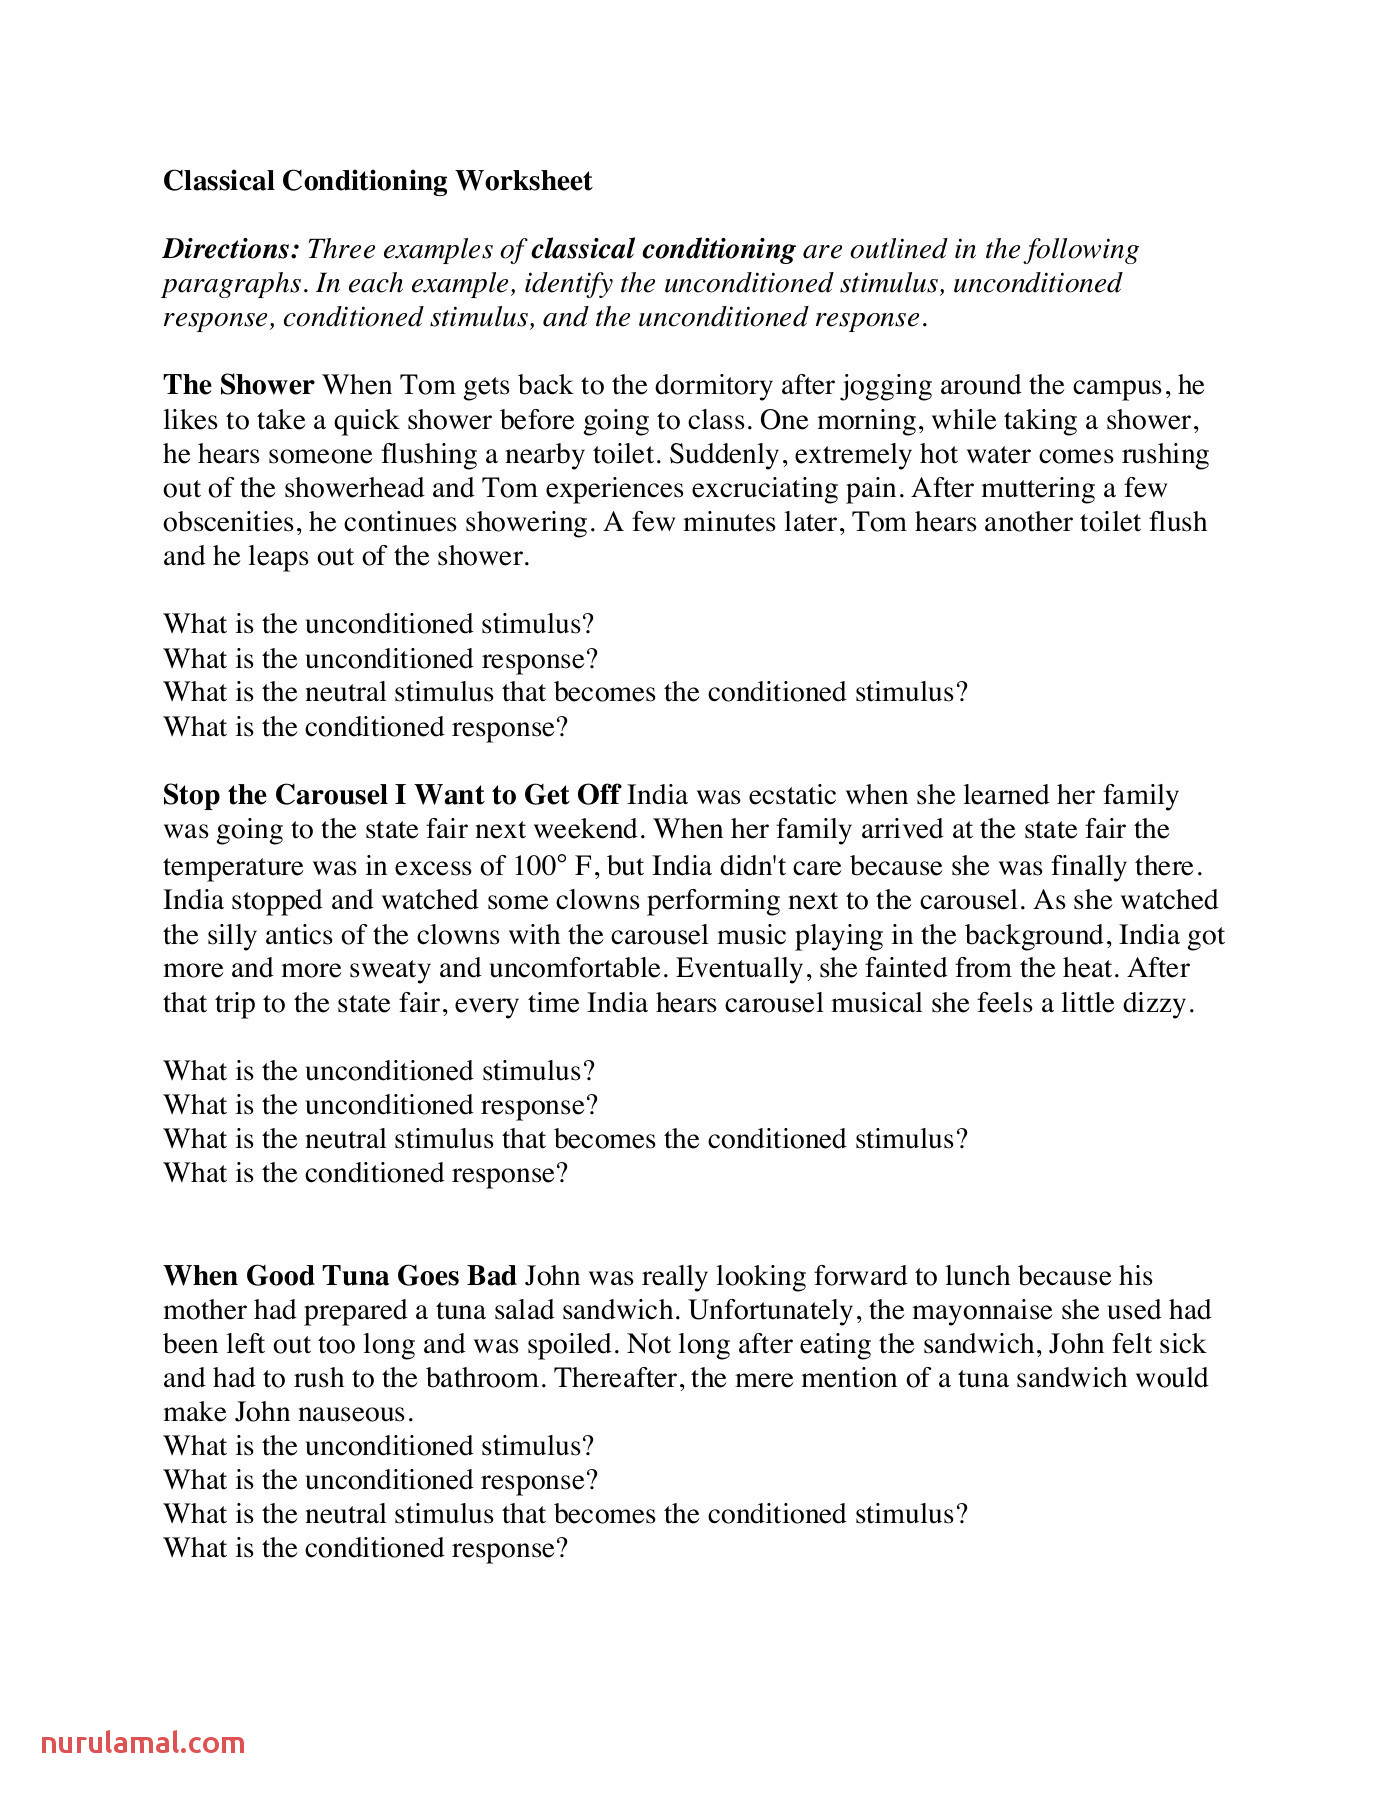 Classical Conditioning Worksheet 2 Lps Pages 1 4 Text